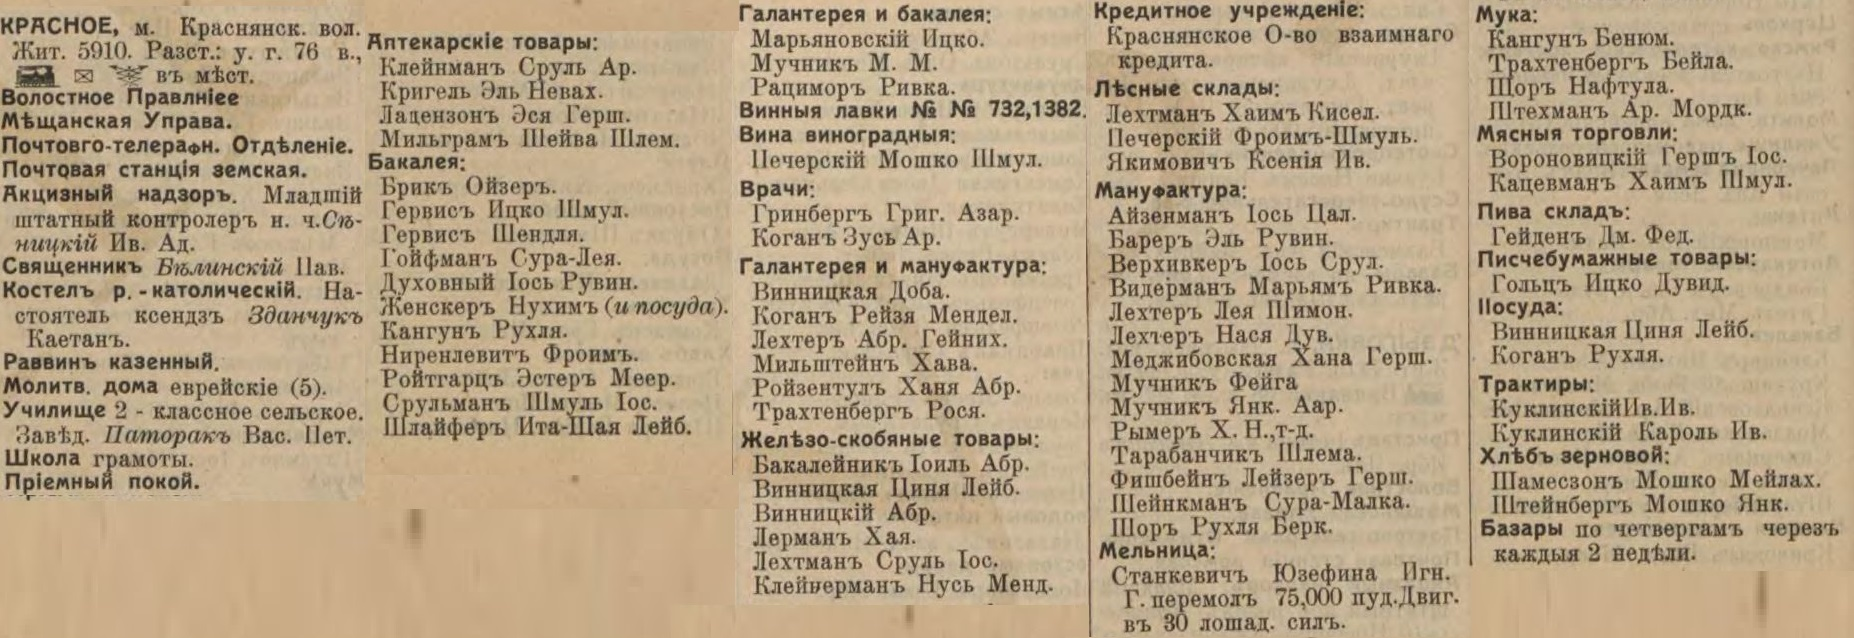 Krasnoe entrepreneurs list from Russian Empire Business Directories by 1913